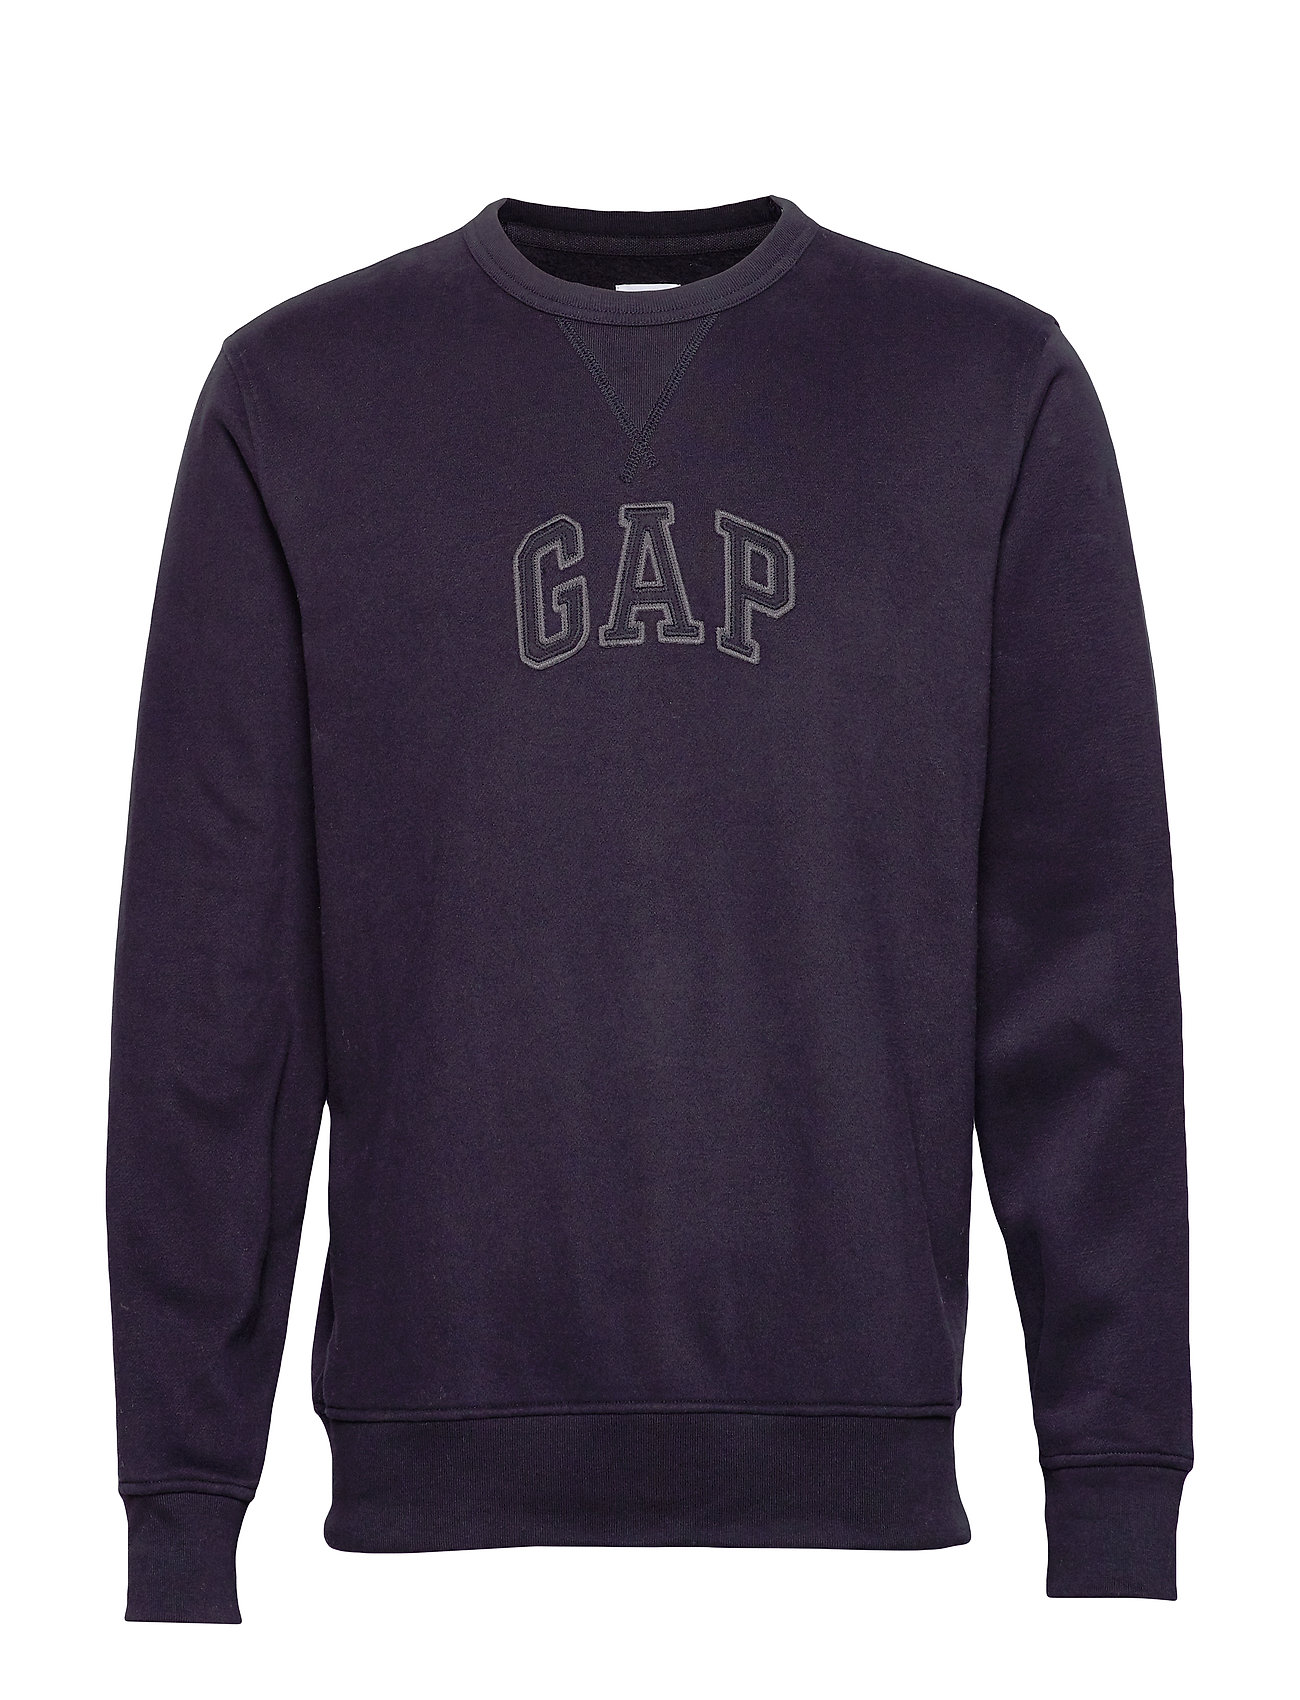 GAP Gap Logo Crewneck Sweatshirt - TRUE BLACK V2 2